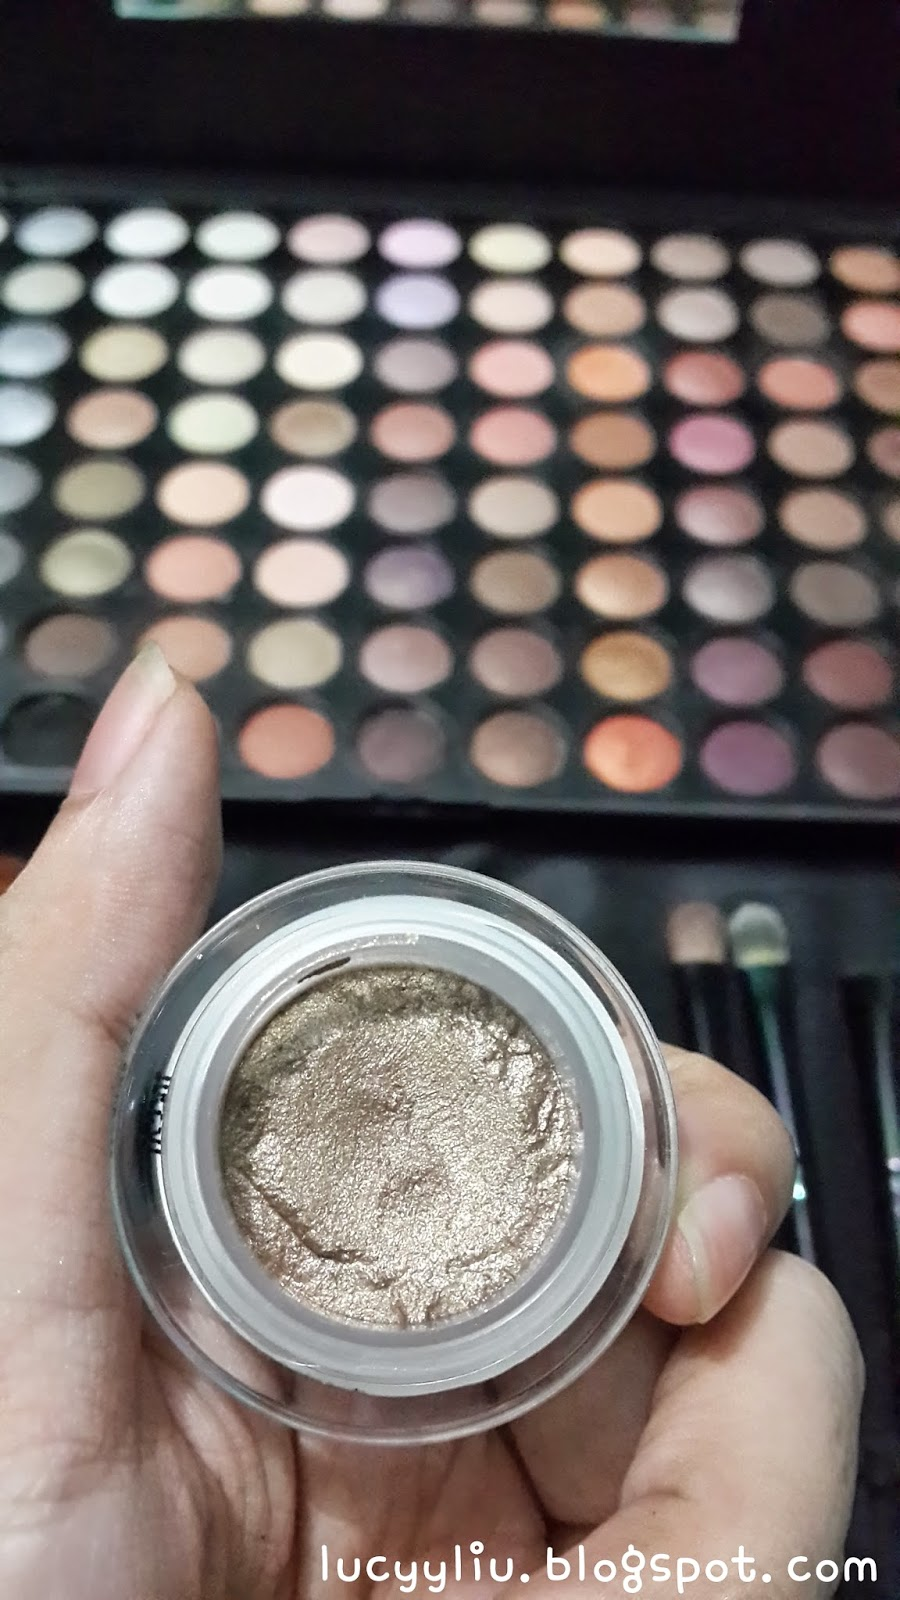 Calvin Klein Tempting Glimmer Sheer Eye Shadow review